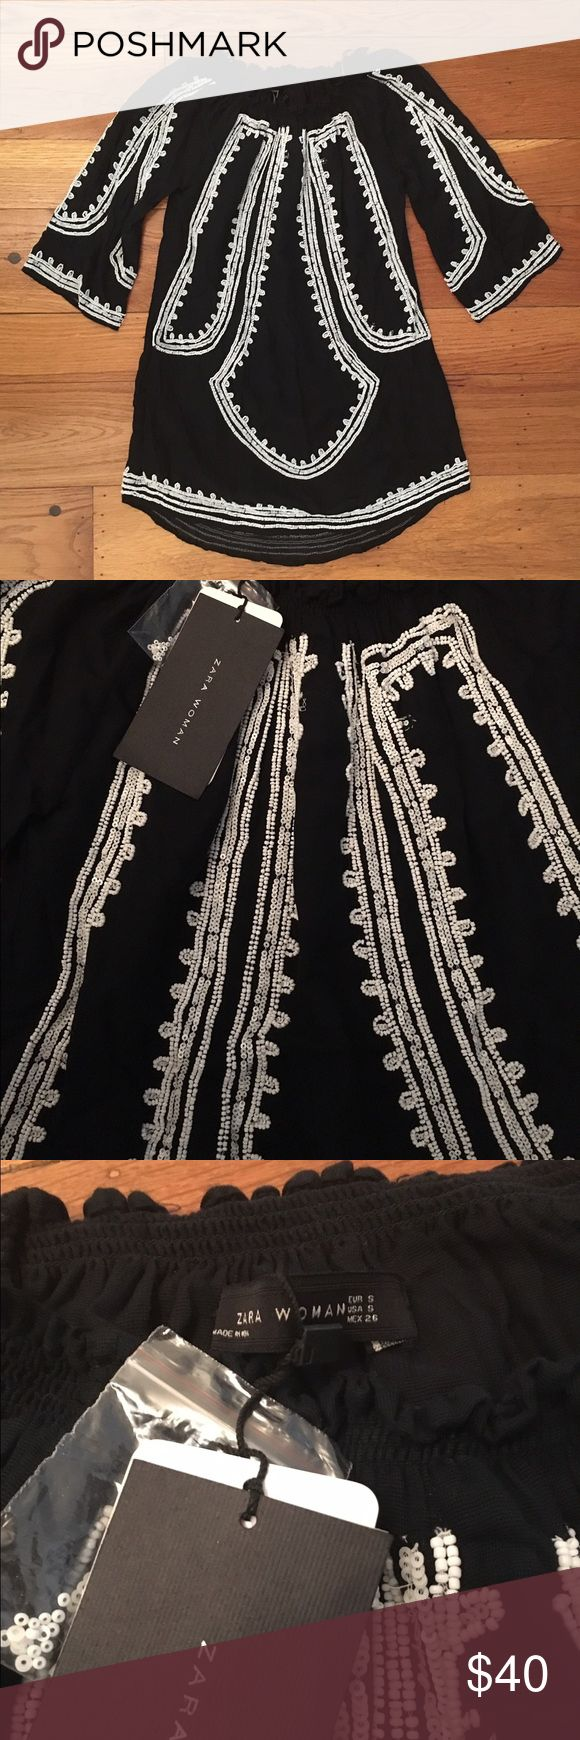 Zara Beaded Dress NWT Black dress with white beads and sequins. NWT, never been worn. Great for over swimsuit poolside or summer evening date nights! Size Small Zara Dresses Long Sleeve